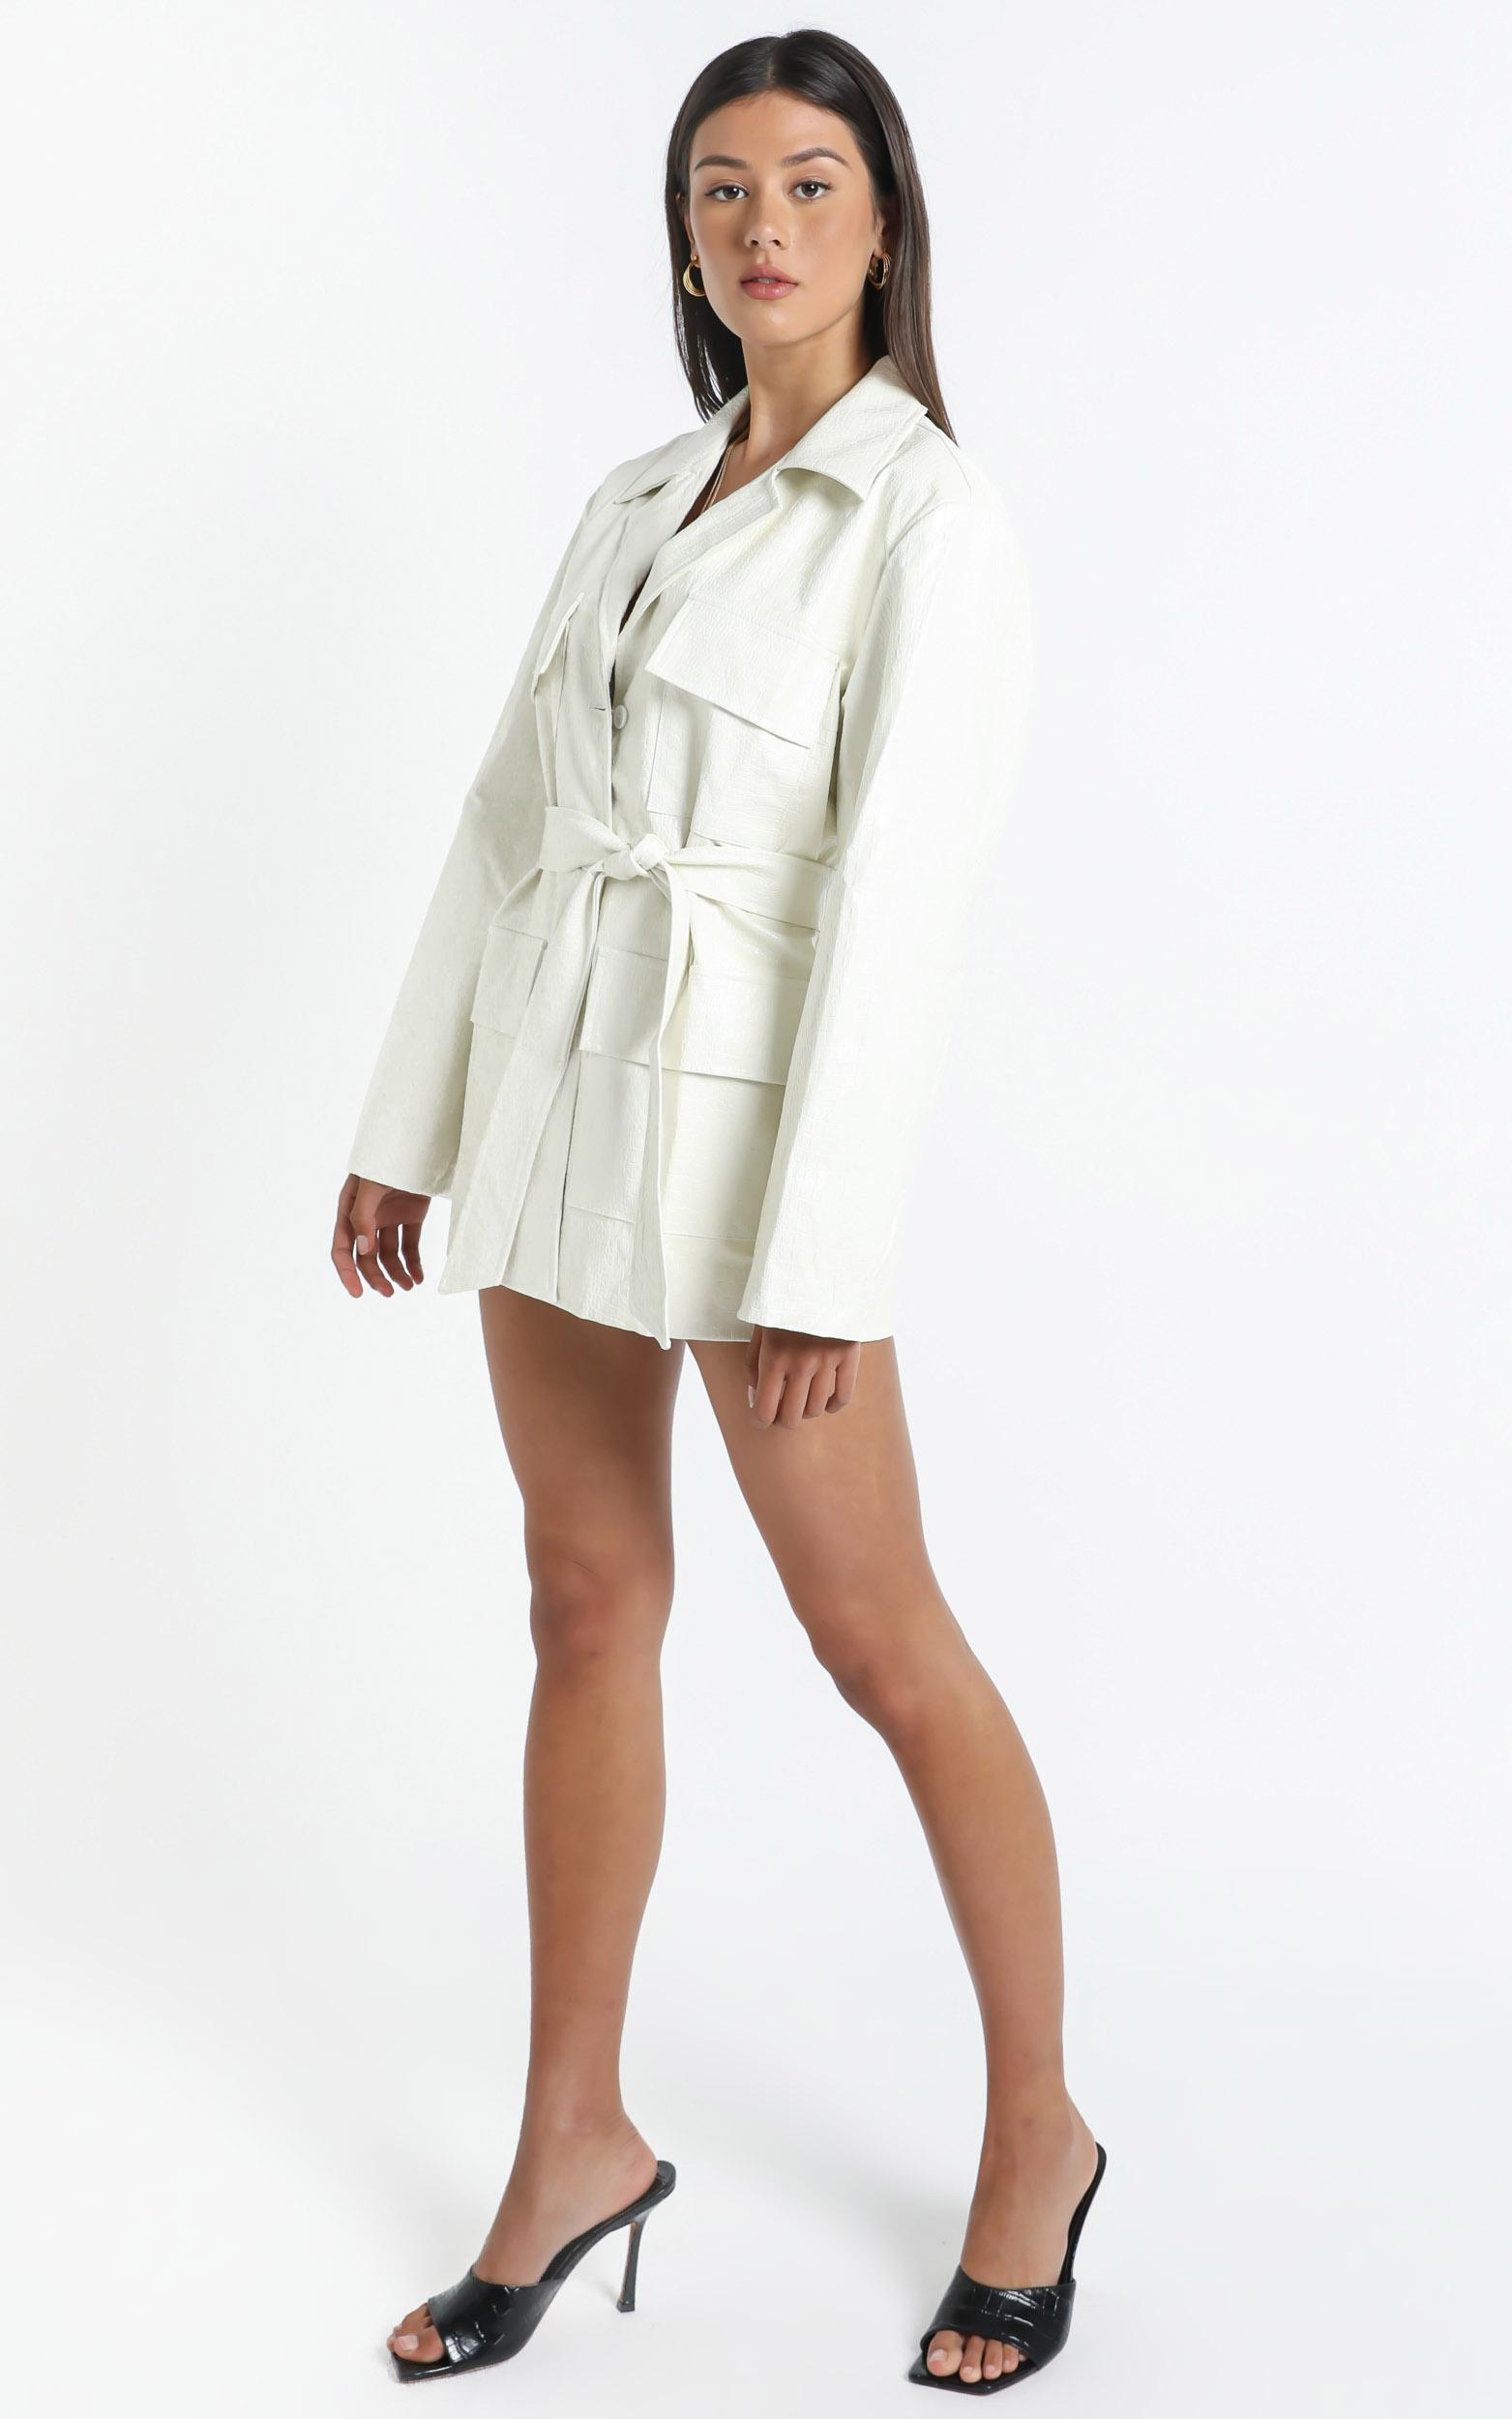 Victory Boulevard Dress in White - 12 (L), White, hi-res image number null